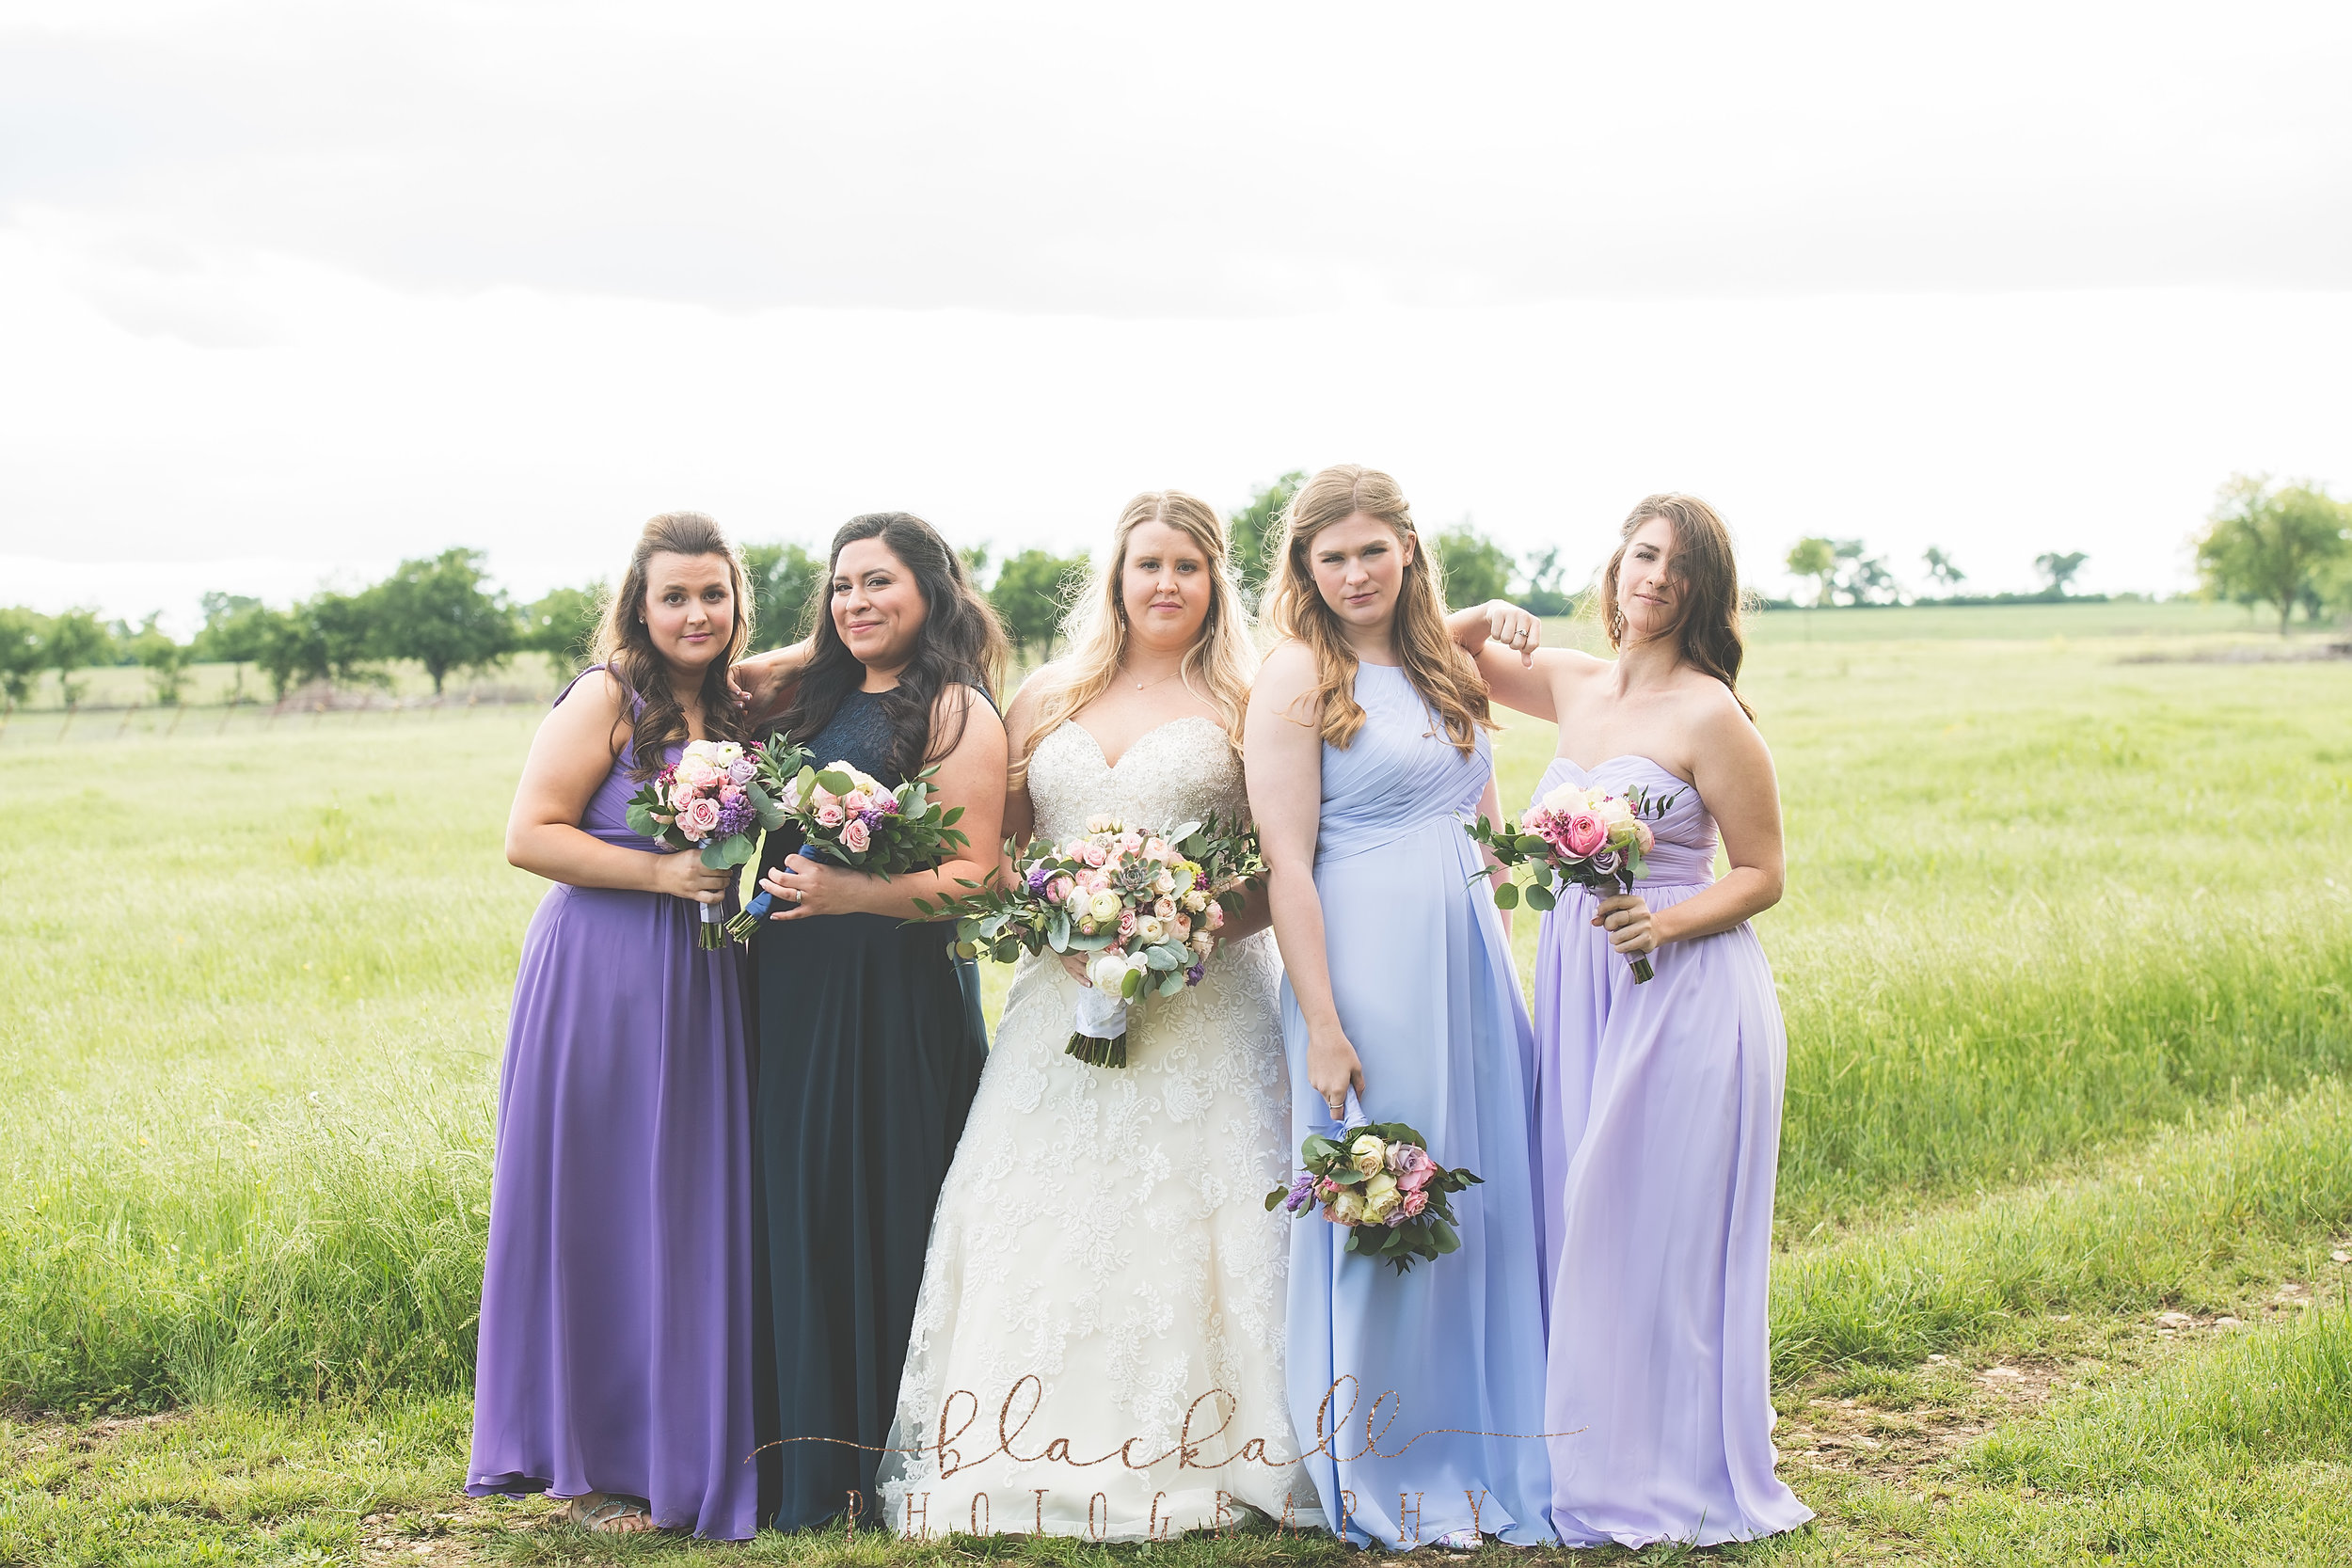 BUCHLER bride_ BlackallPhotography_32.JPG